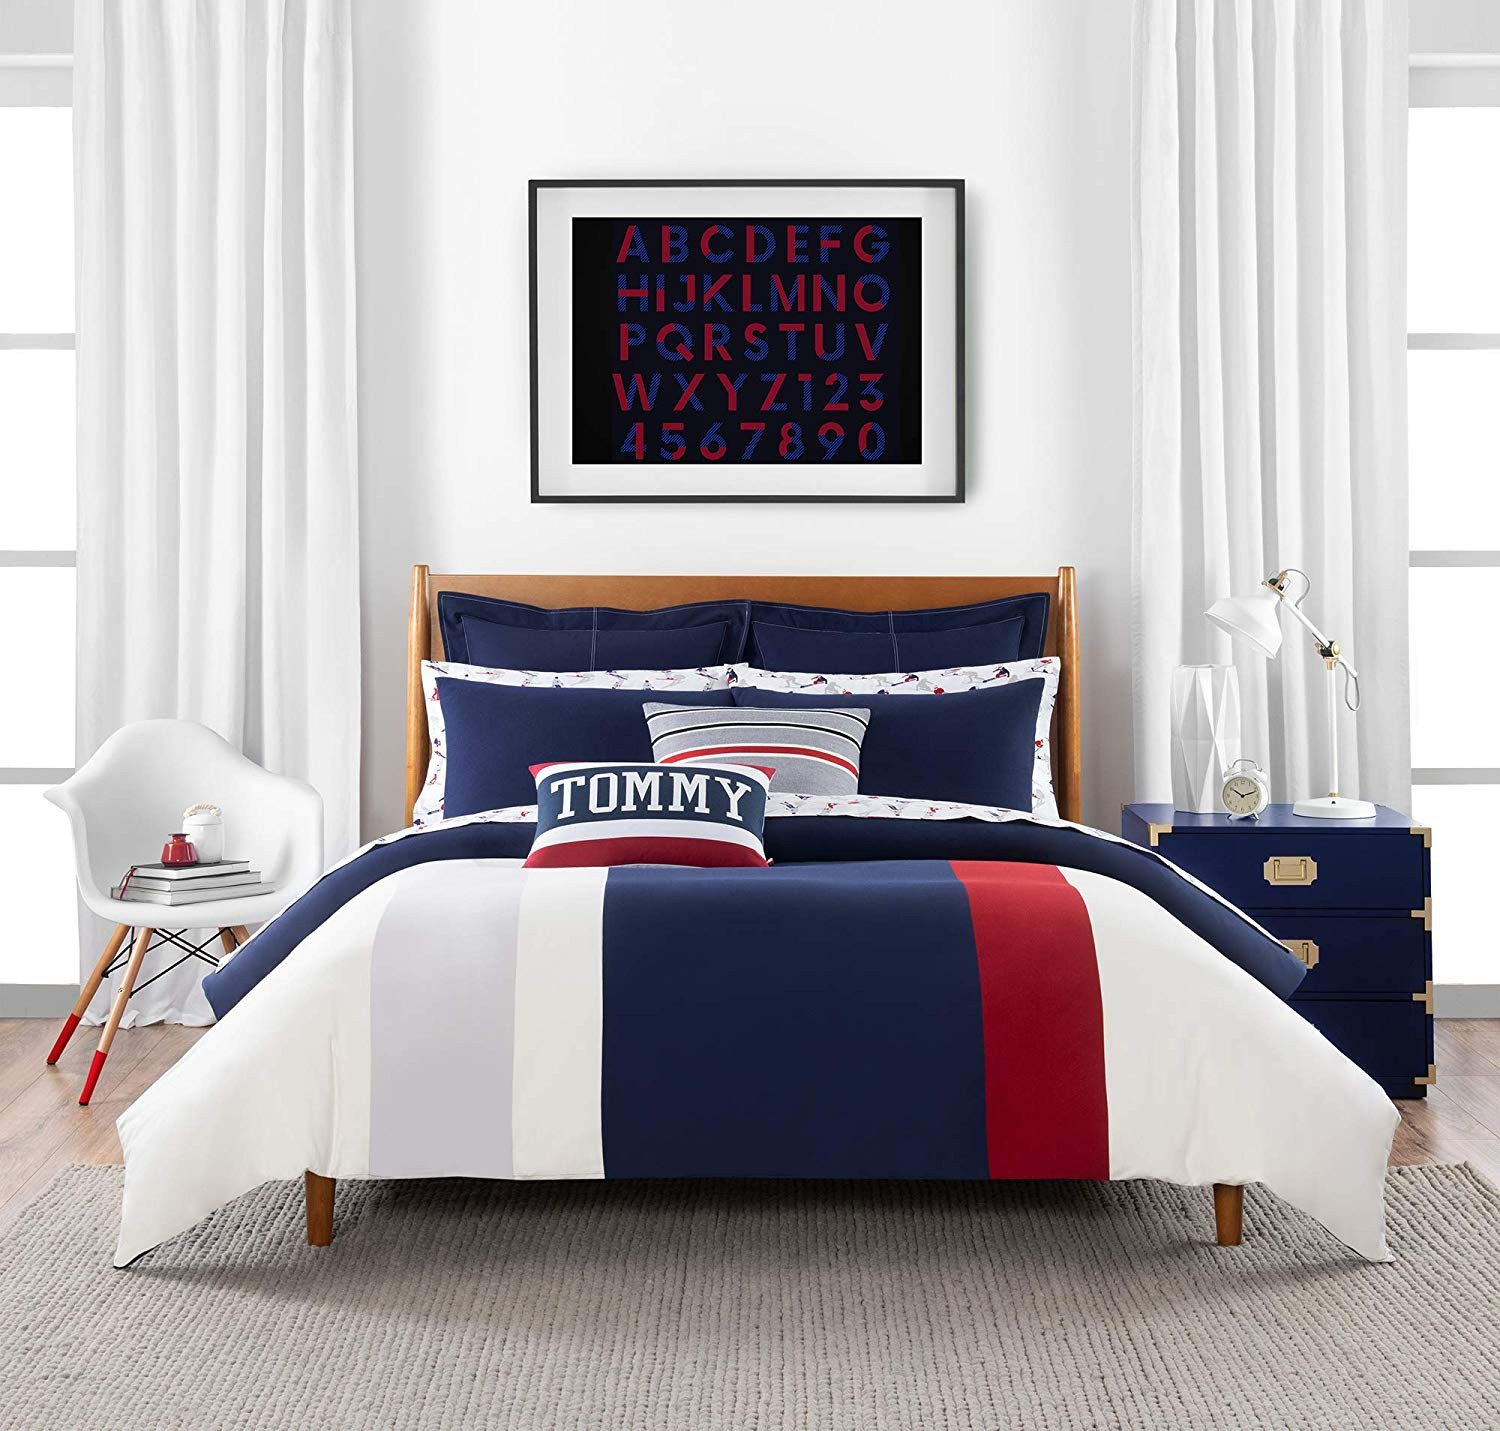 Used King Bedroom Set Inspirational Amazon tommy Hilfiger Clash Of 85 Stripe Duvet Cover